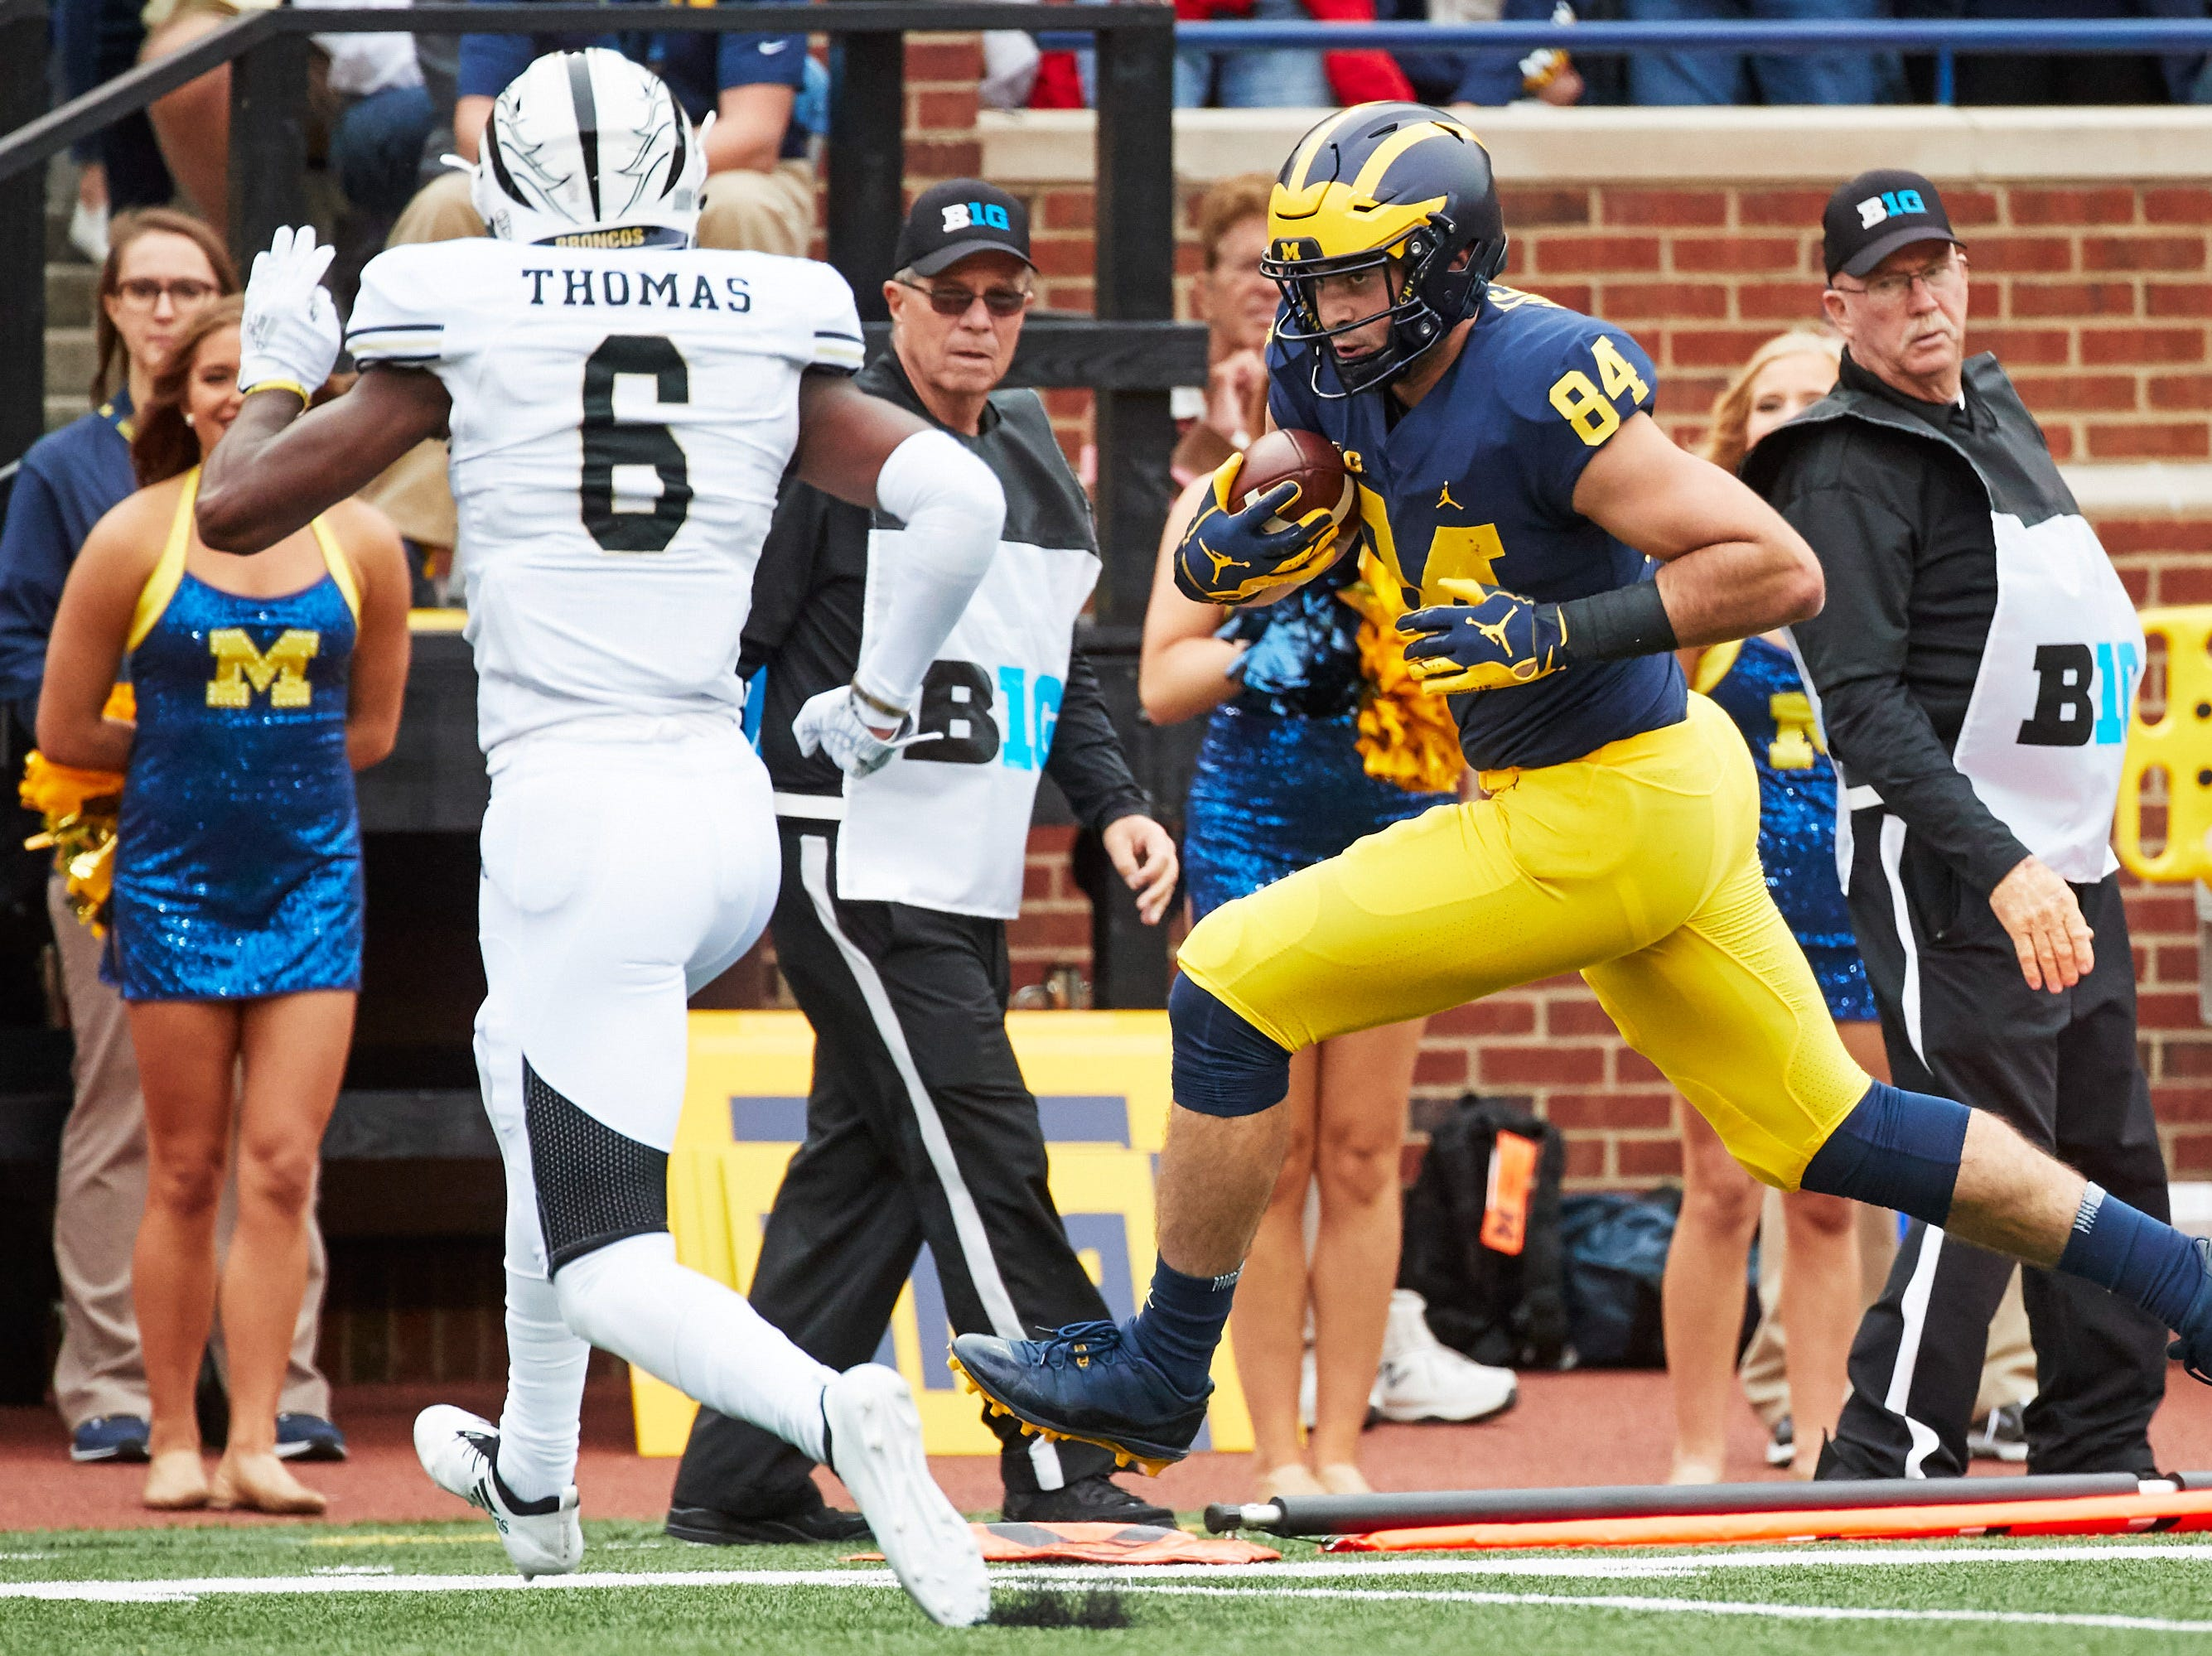 Sep 8, 2018; Ann Arbor, MI, USA; Michigan Wolverines tight end Sean McKeon (84) runs the ball for a touchdown past Western Michigan Broncos wide receiver Drake Harris (6) in the first half at Michigan Stadium. Mandatory Credit: Rick Osentoski-USA TODAY Sports